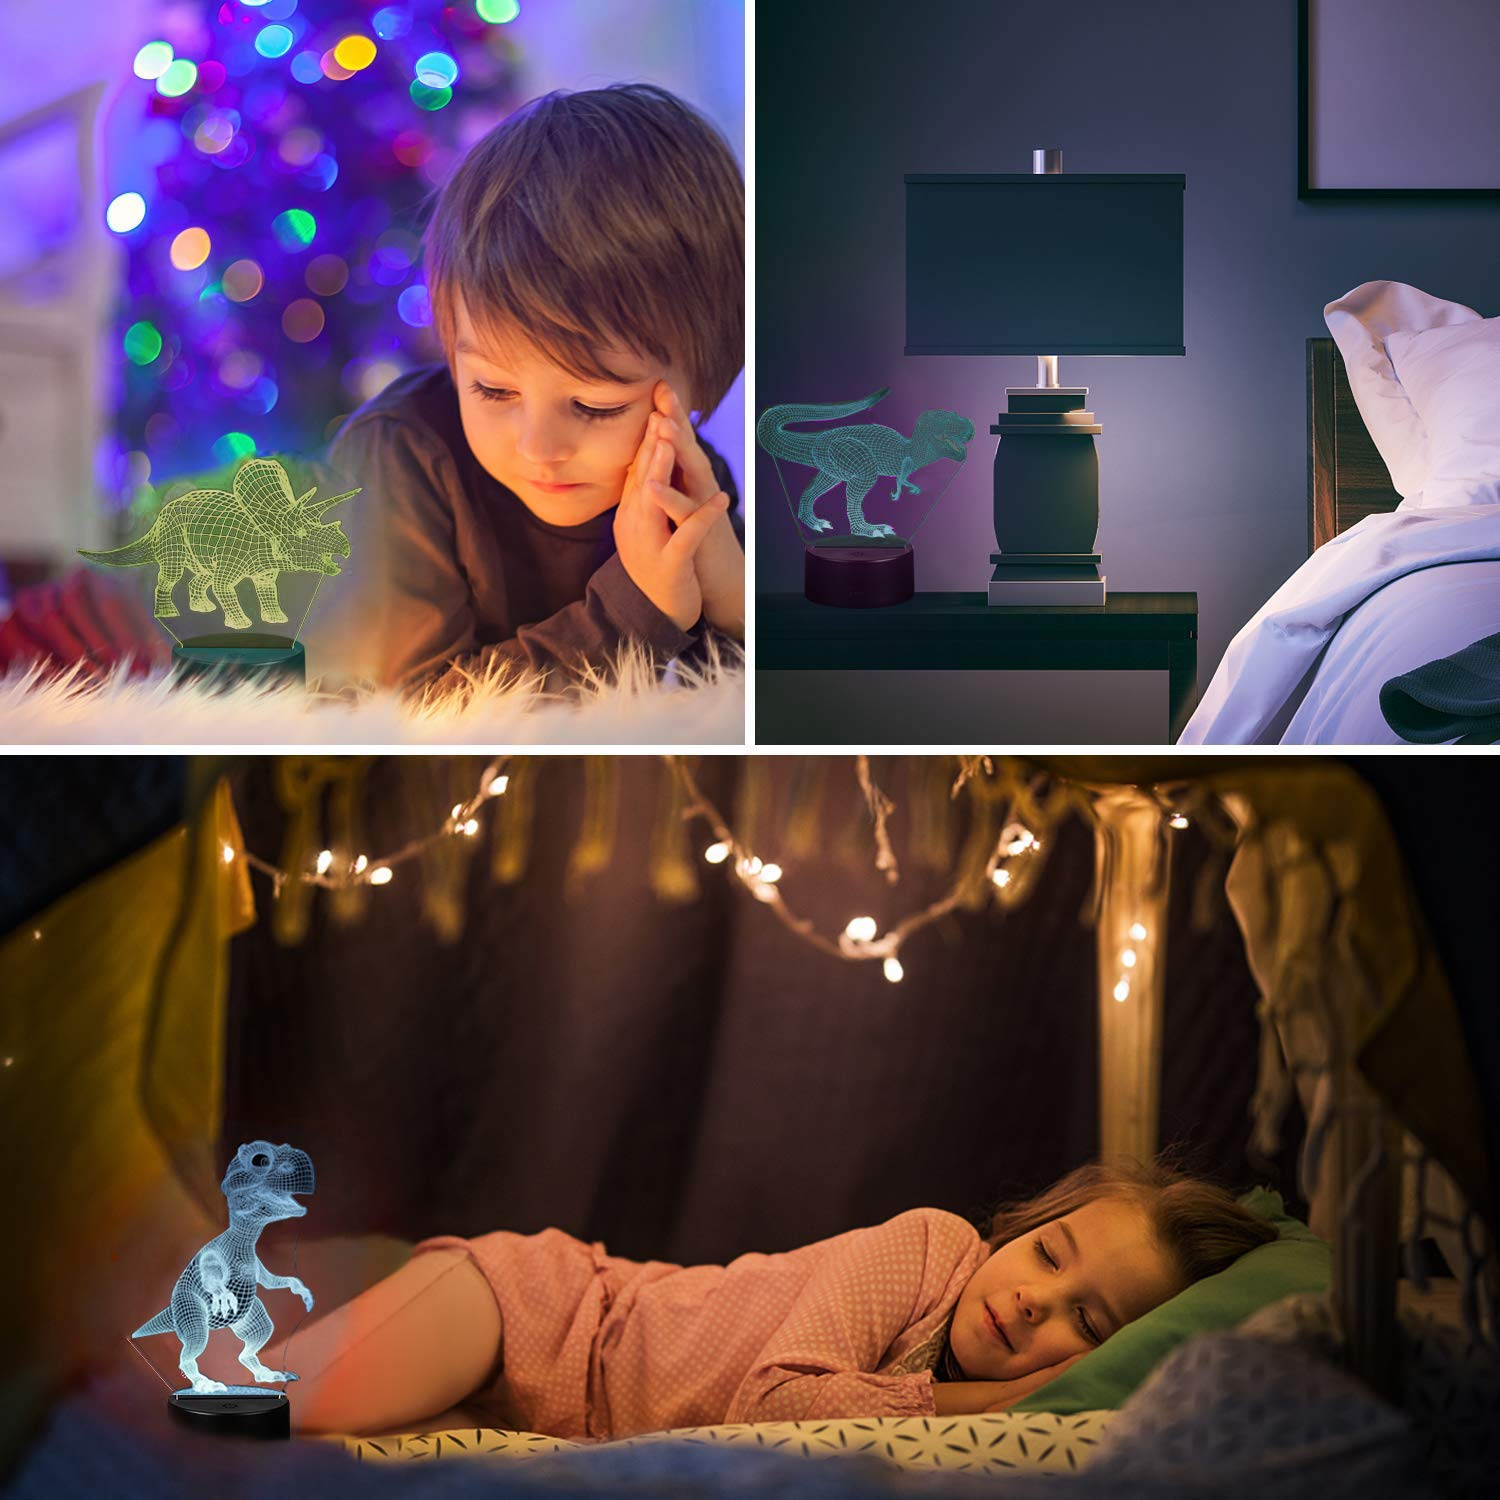 3D Night Light, Night Lights for Kids 3 in 1 3D Dinosaur Illusion Night Lamp Bedside Lamp 3 Colors, 3D Night Light for Kids Best Birthday Gifts for Kids Girls Boys Baby